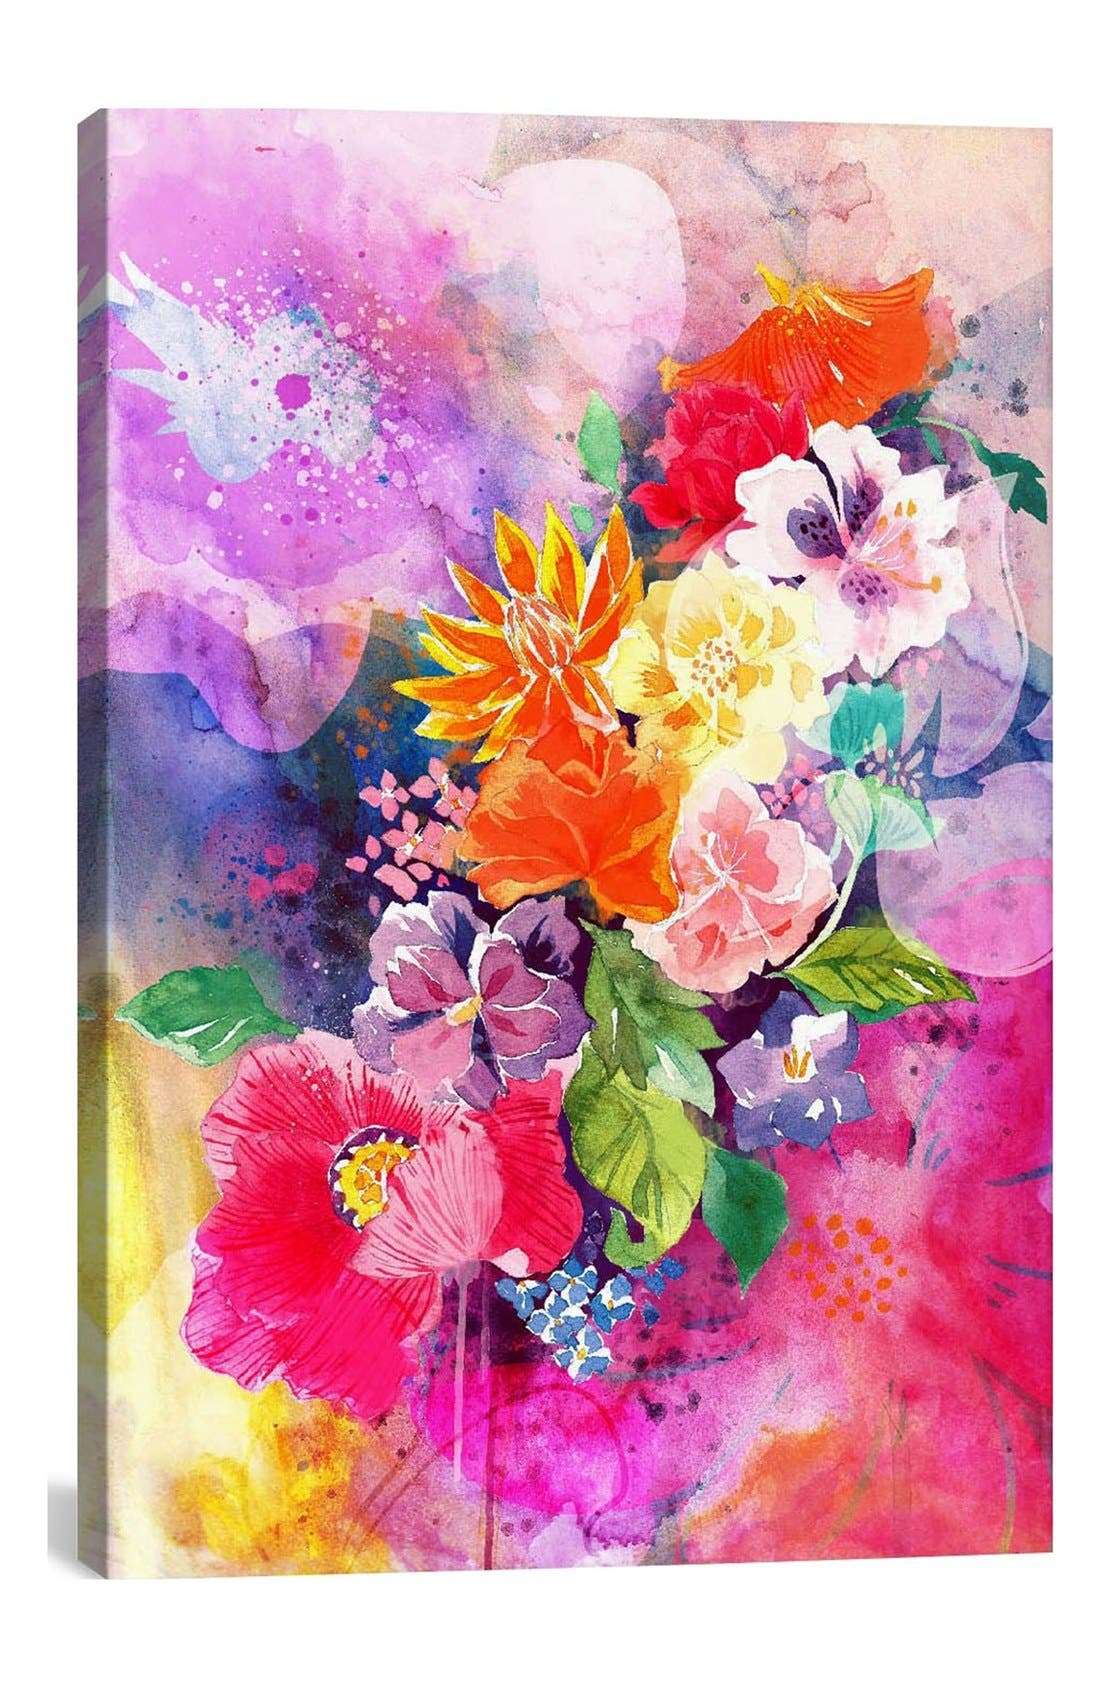 'Spring Flowers - DarkLord' Giclée Print Canvas Art,                             Main thumbnail 1, color,